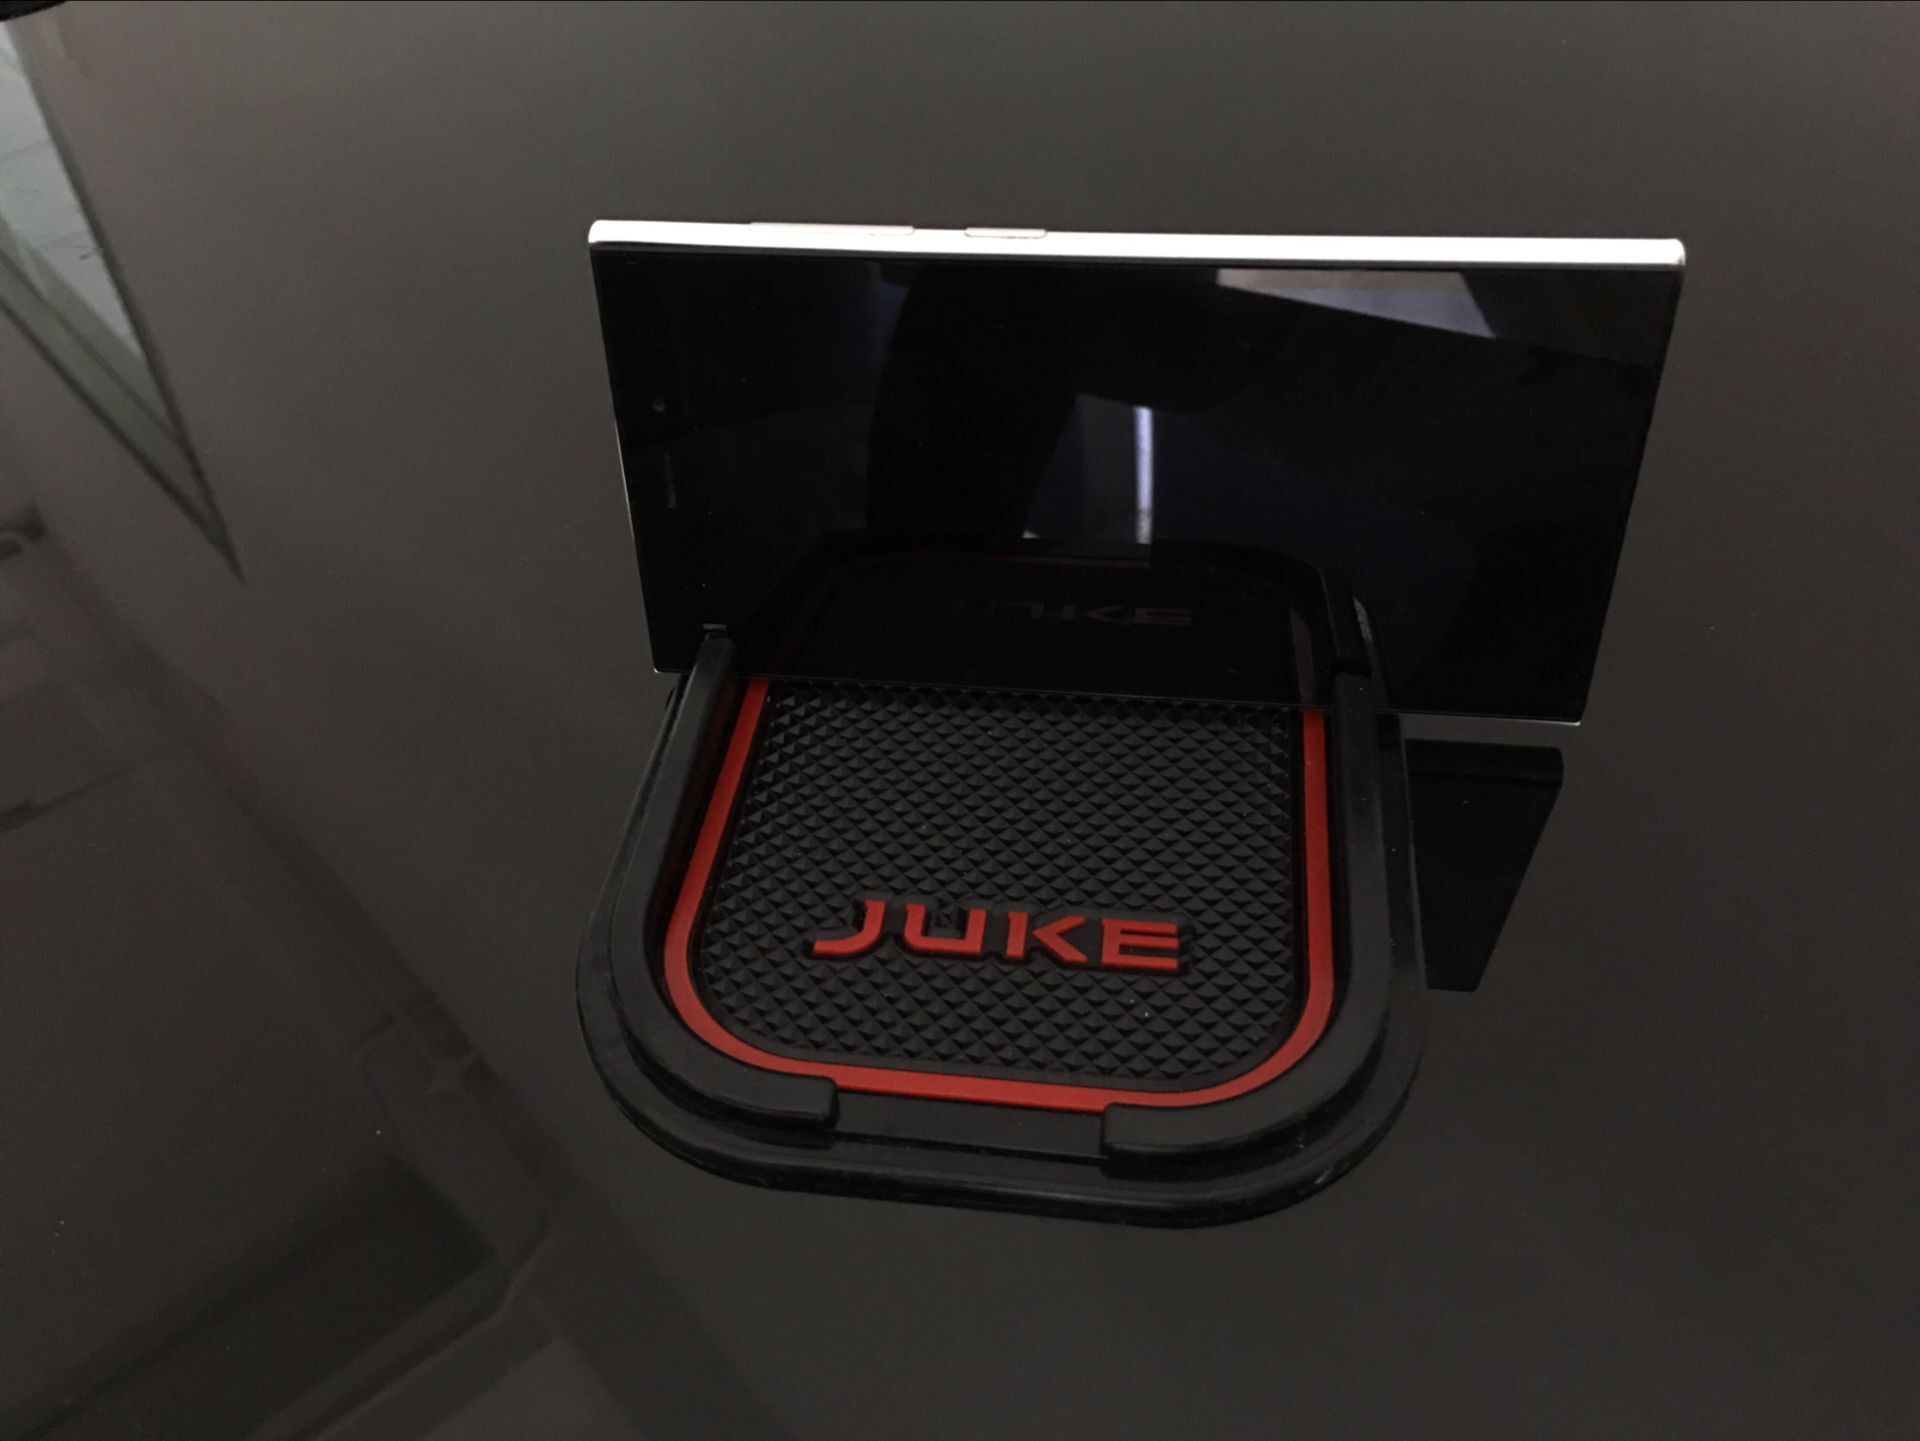 Popular nissan juke mats buy cheap nissan juke mats lots from china nissan juke mats suppliers - Notepad holder for car ...